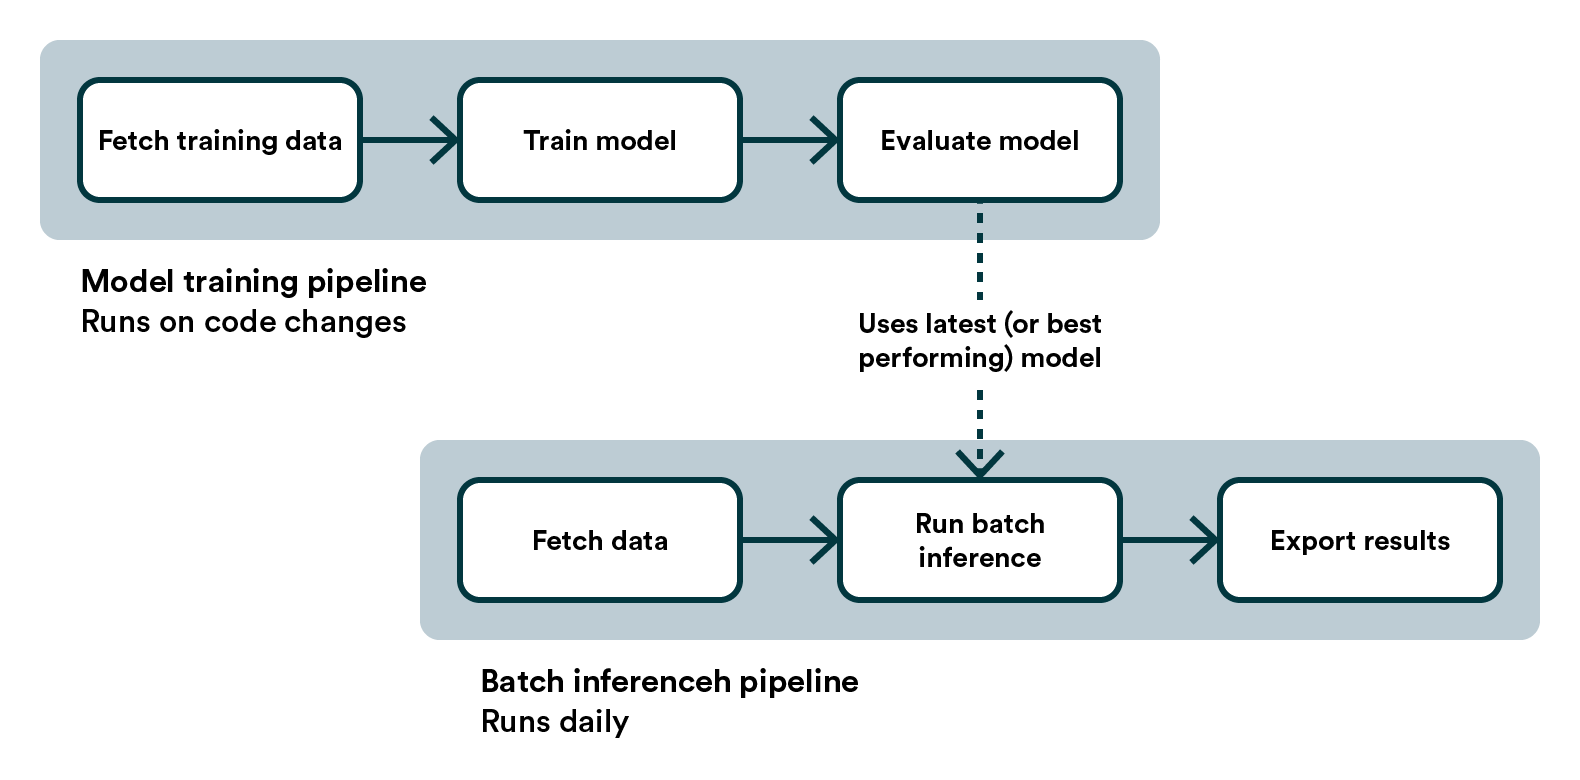 Pipelines for Batch Inference